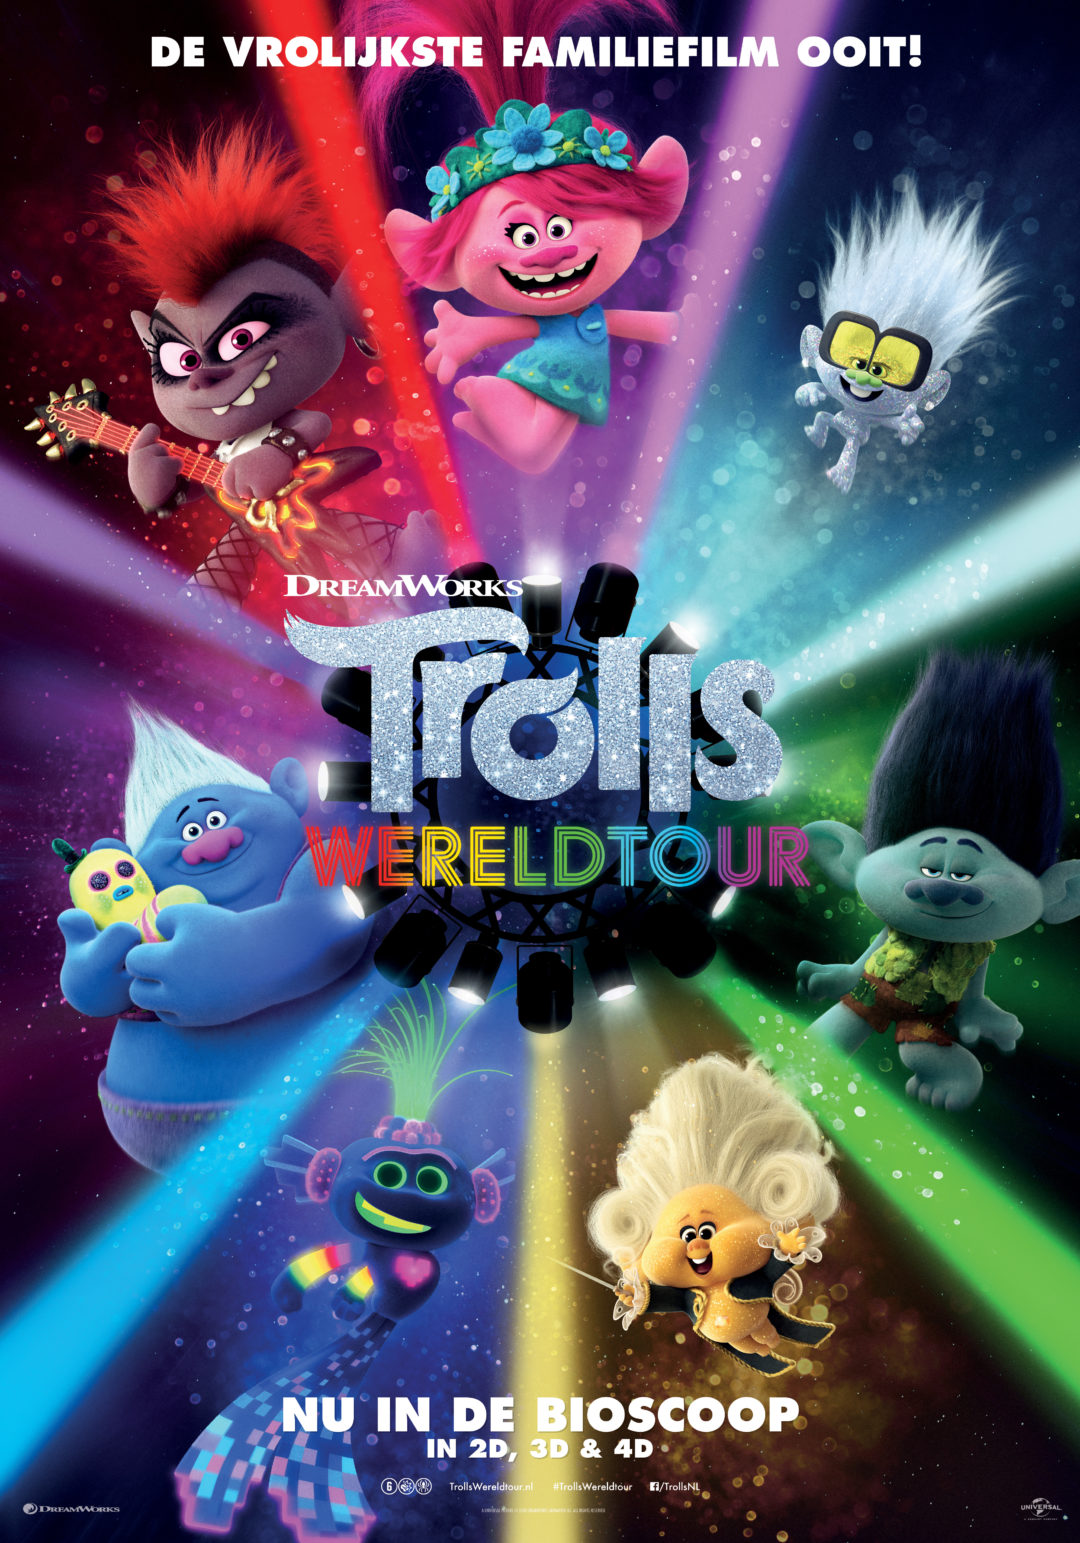 Trolls-Wereldtour_ps_1_jpg_sd-high_Copyright-2019-DreamWorks-Animation-LLC-All-Rights-Reserved.jpg